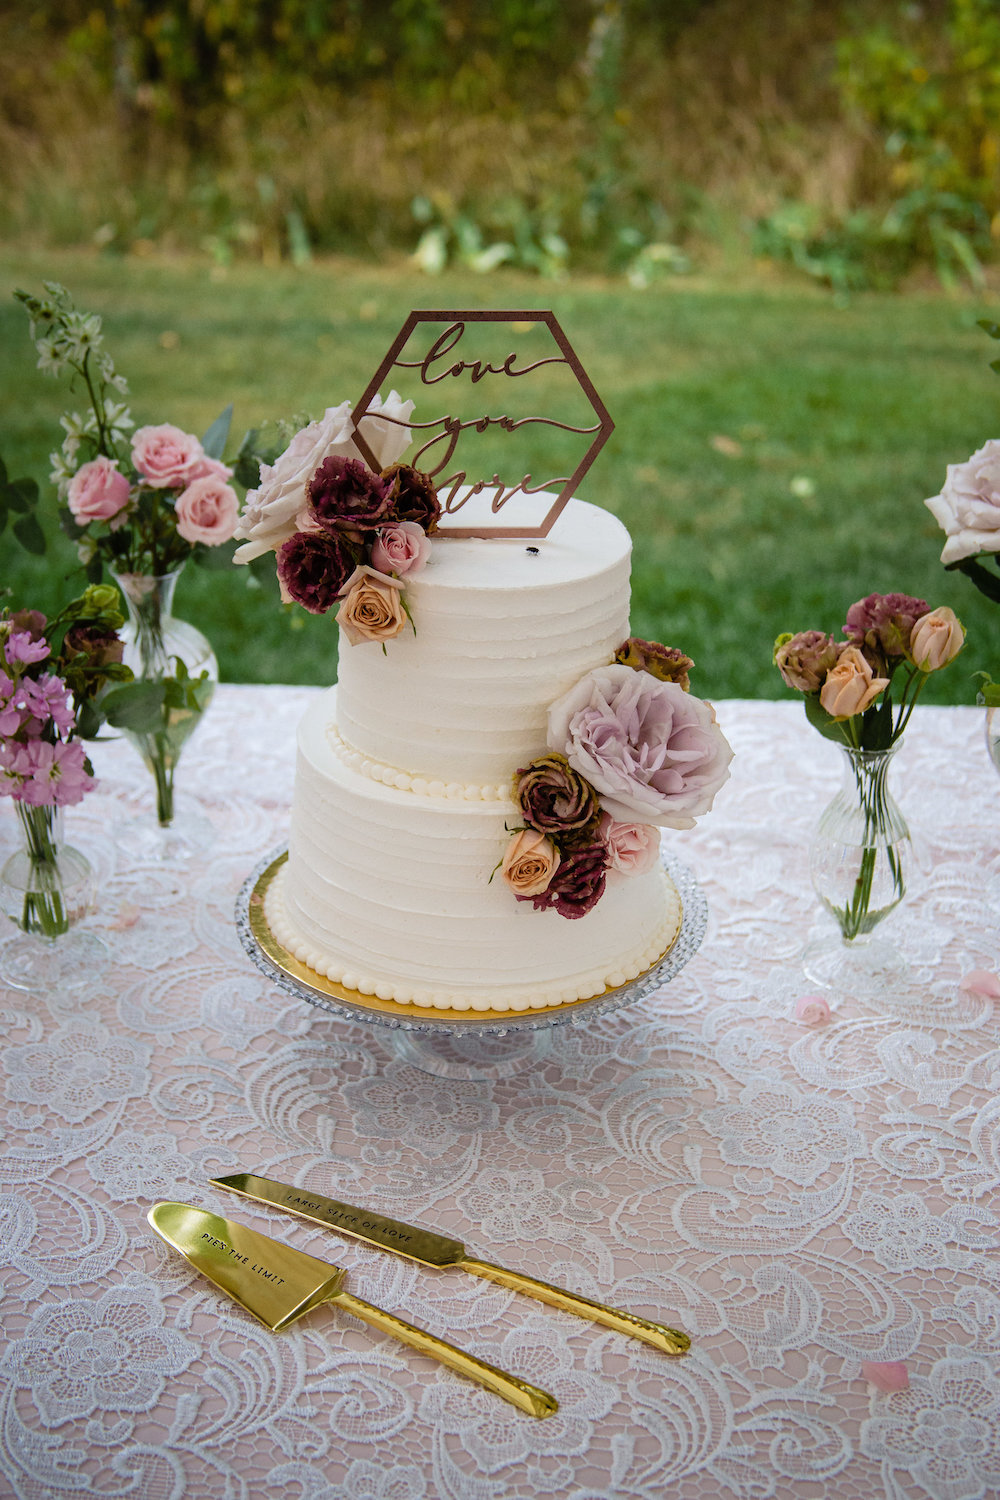 Buttercream Wedding Cake with Fresh Flowers - Wedding Planning in Winnipeg